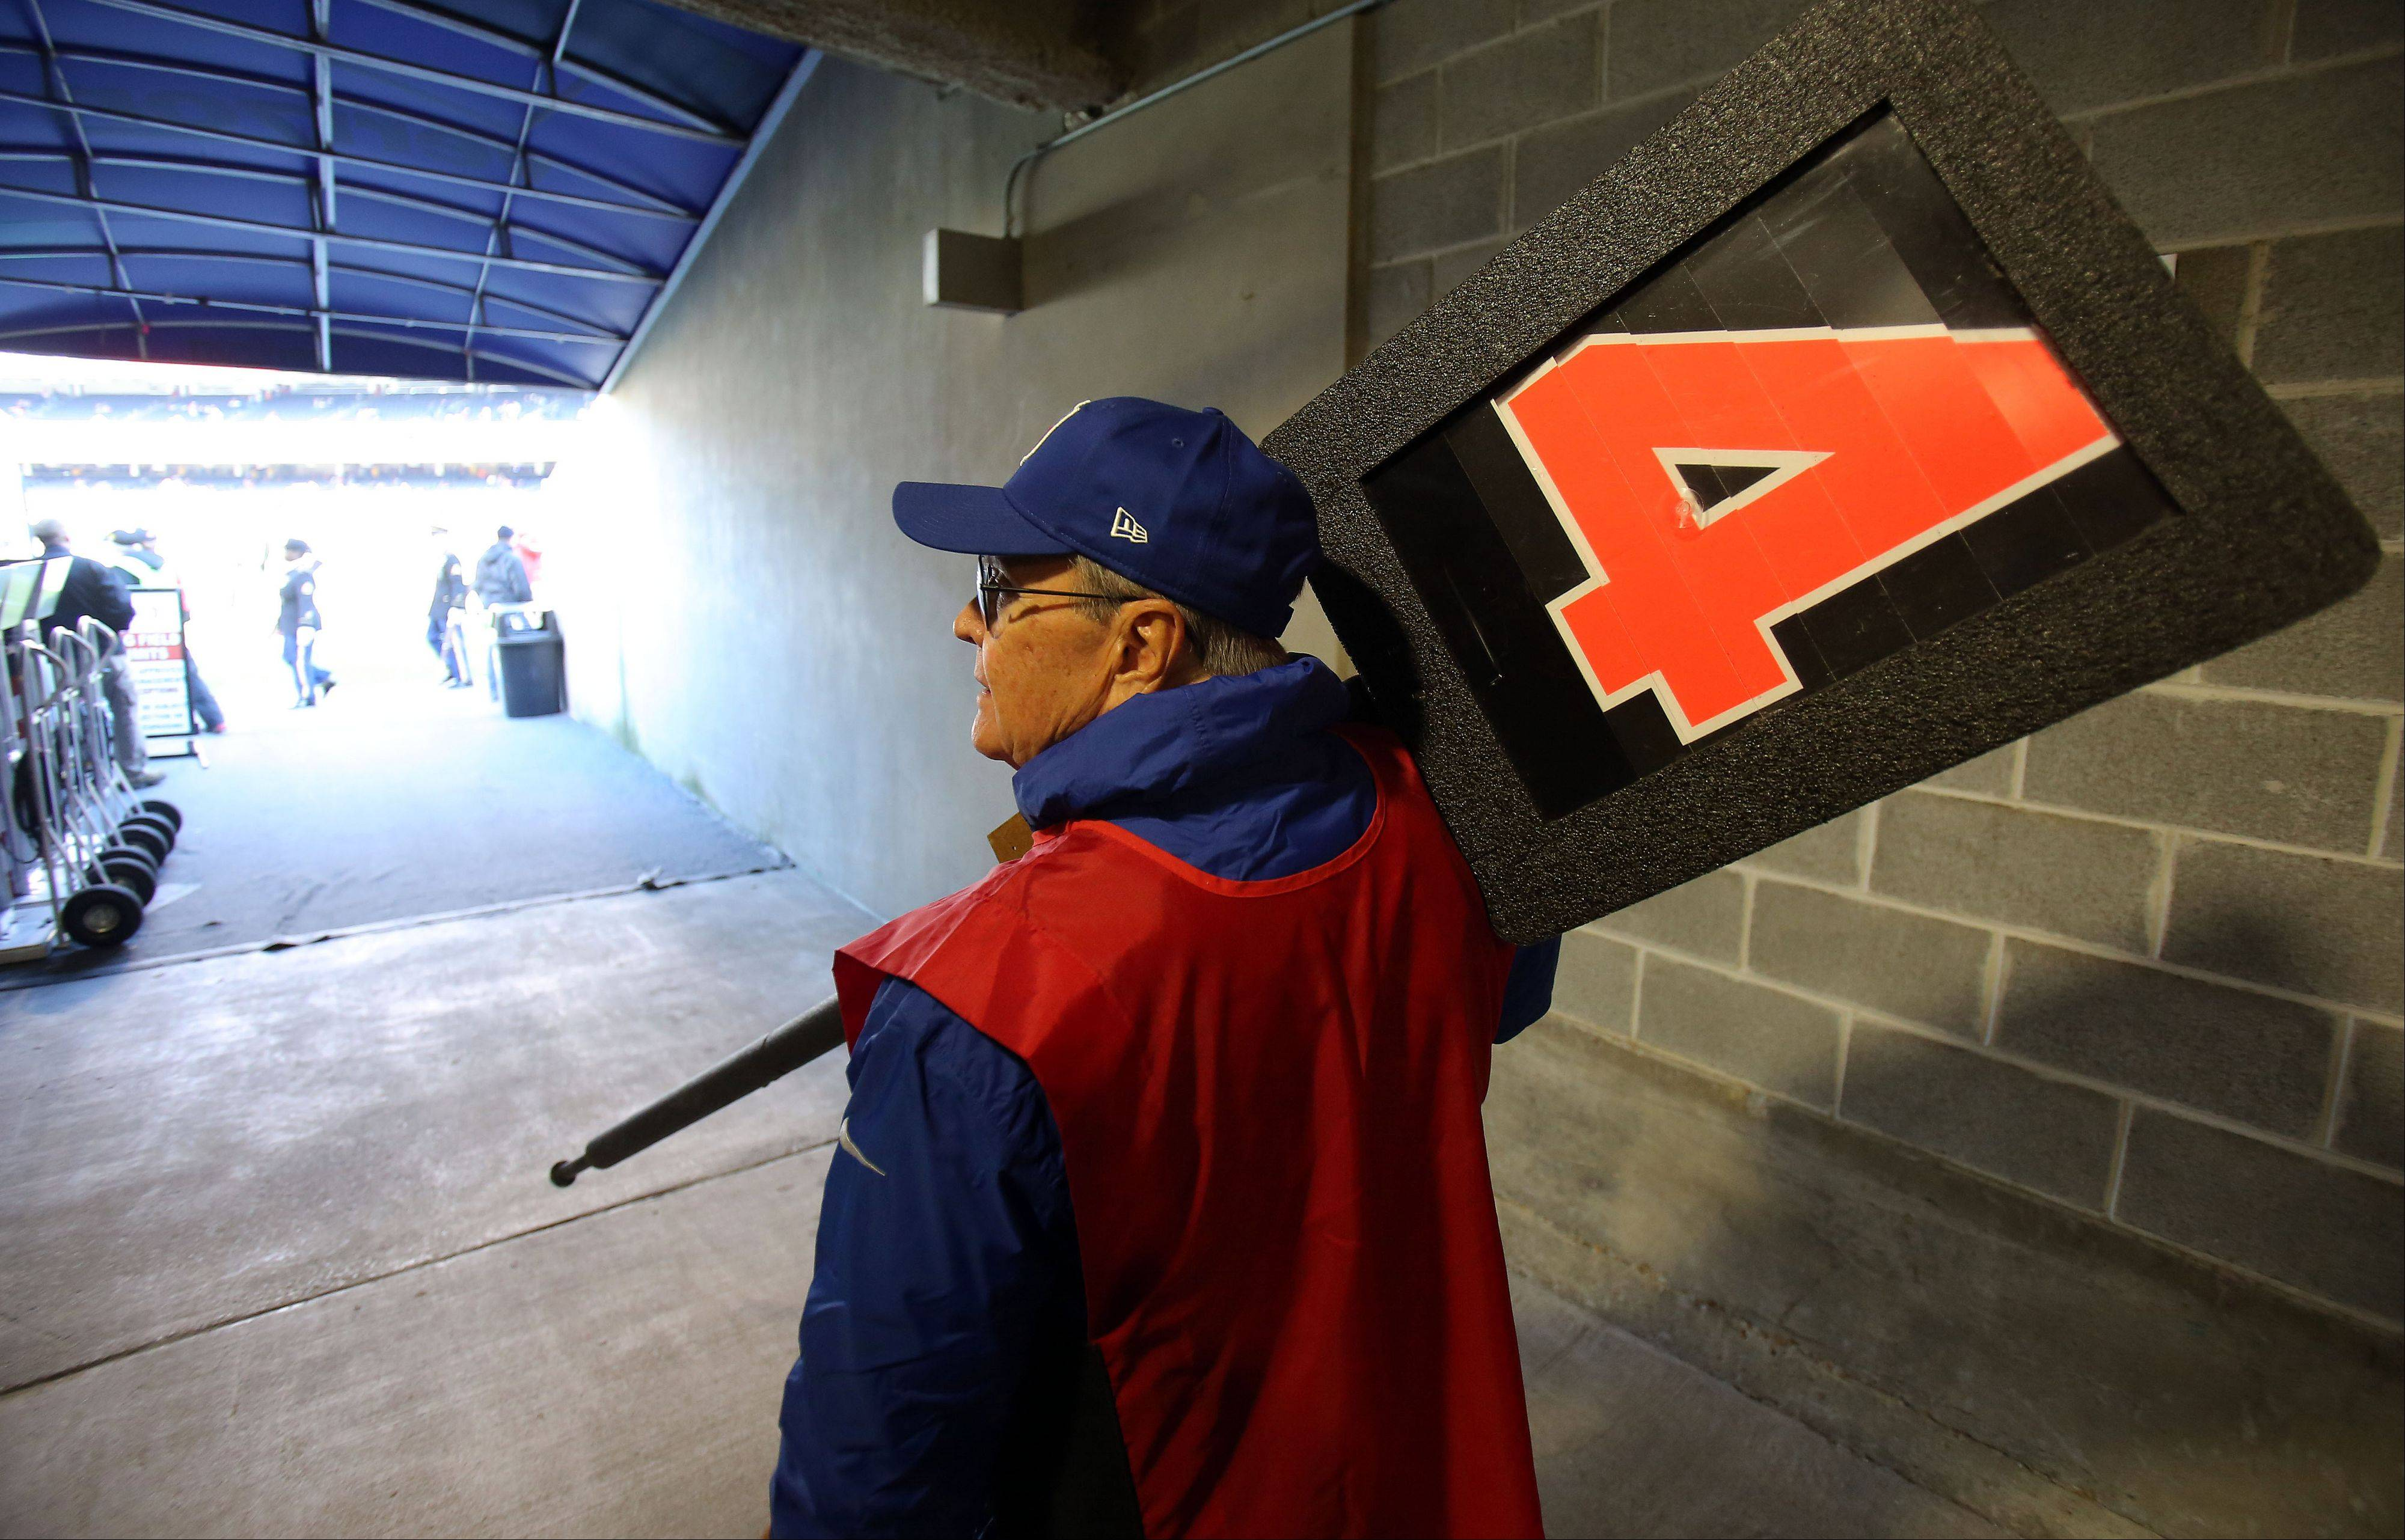 Harold Schwind of Roselle makes his way out to the field with his down marker for the Bears game Sunday, Nov. 9.